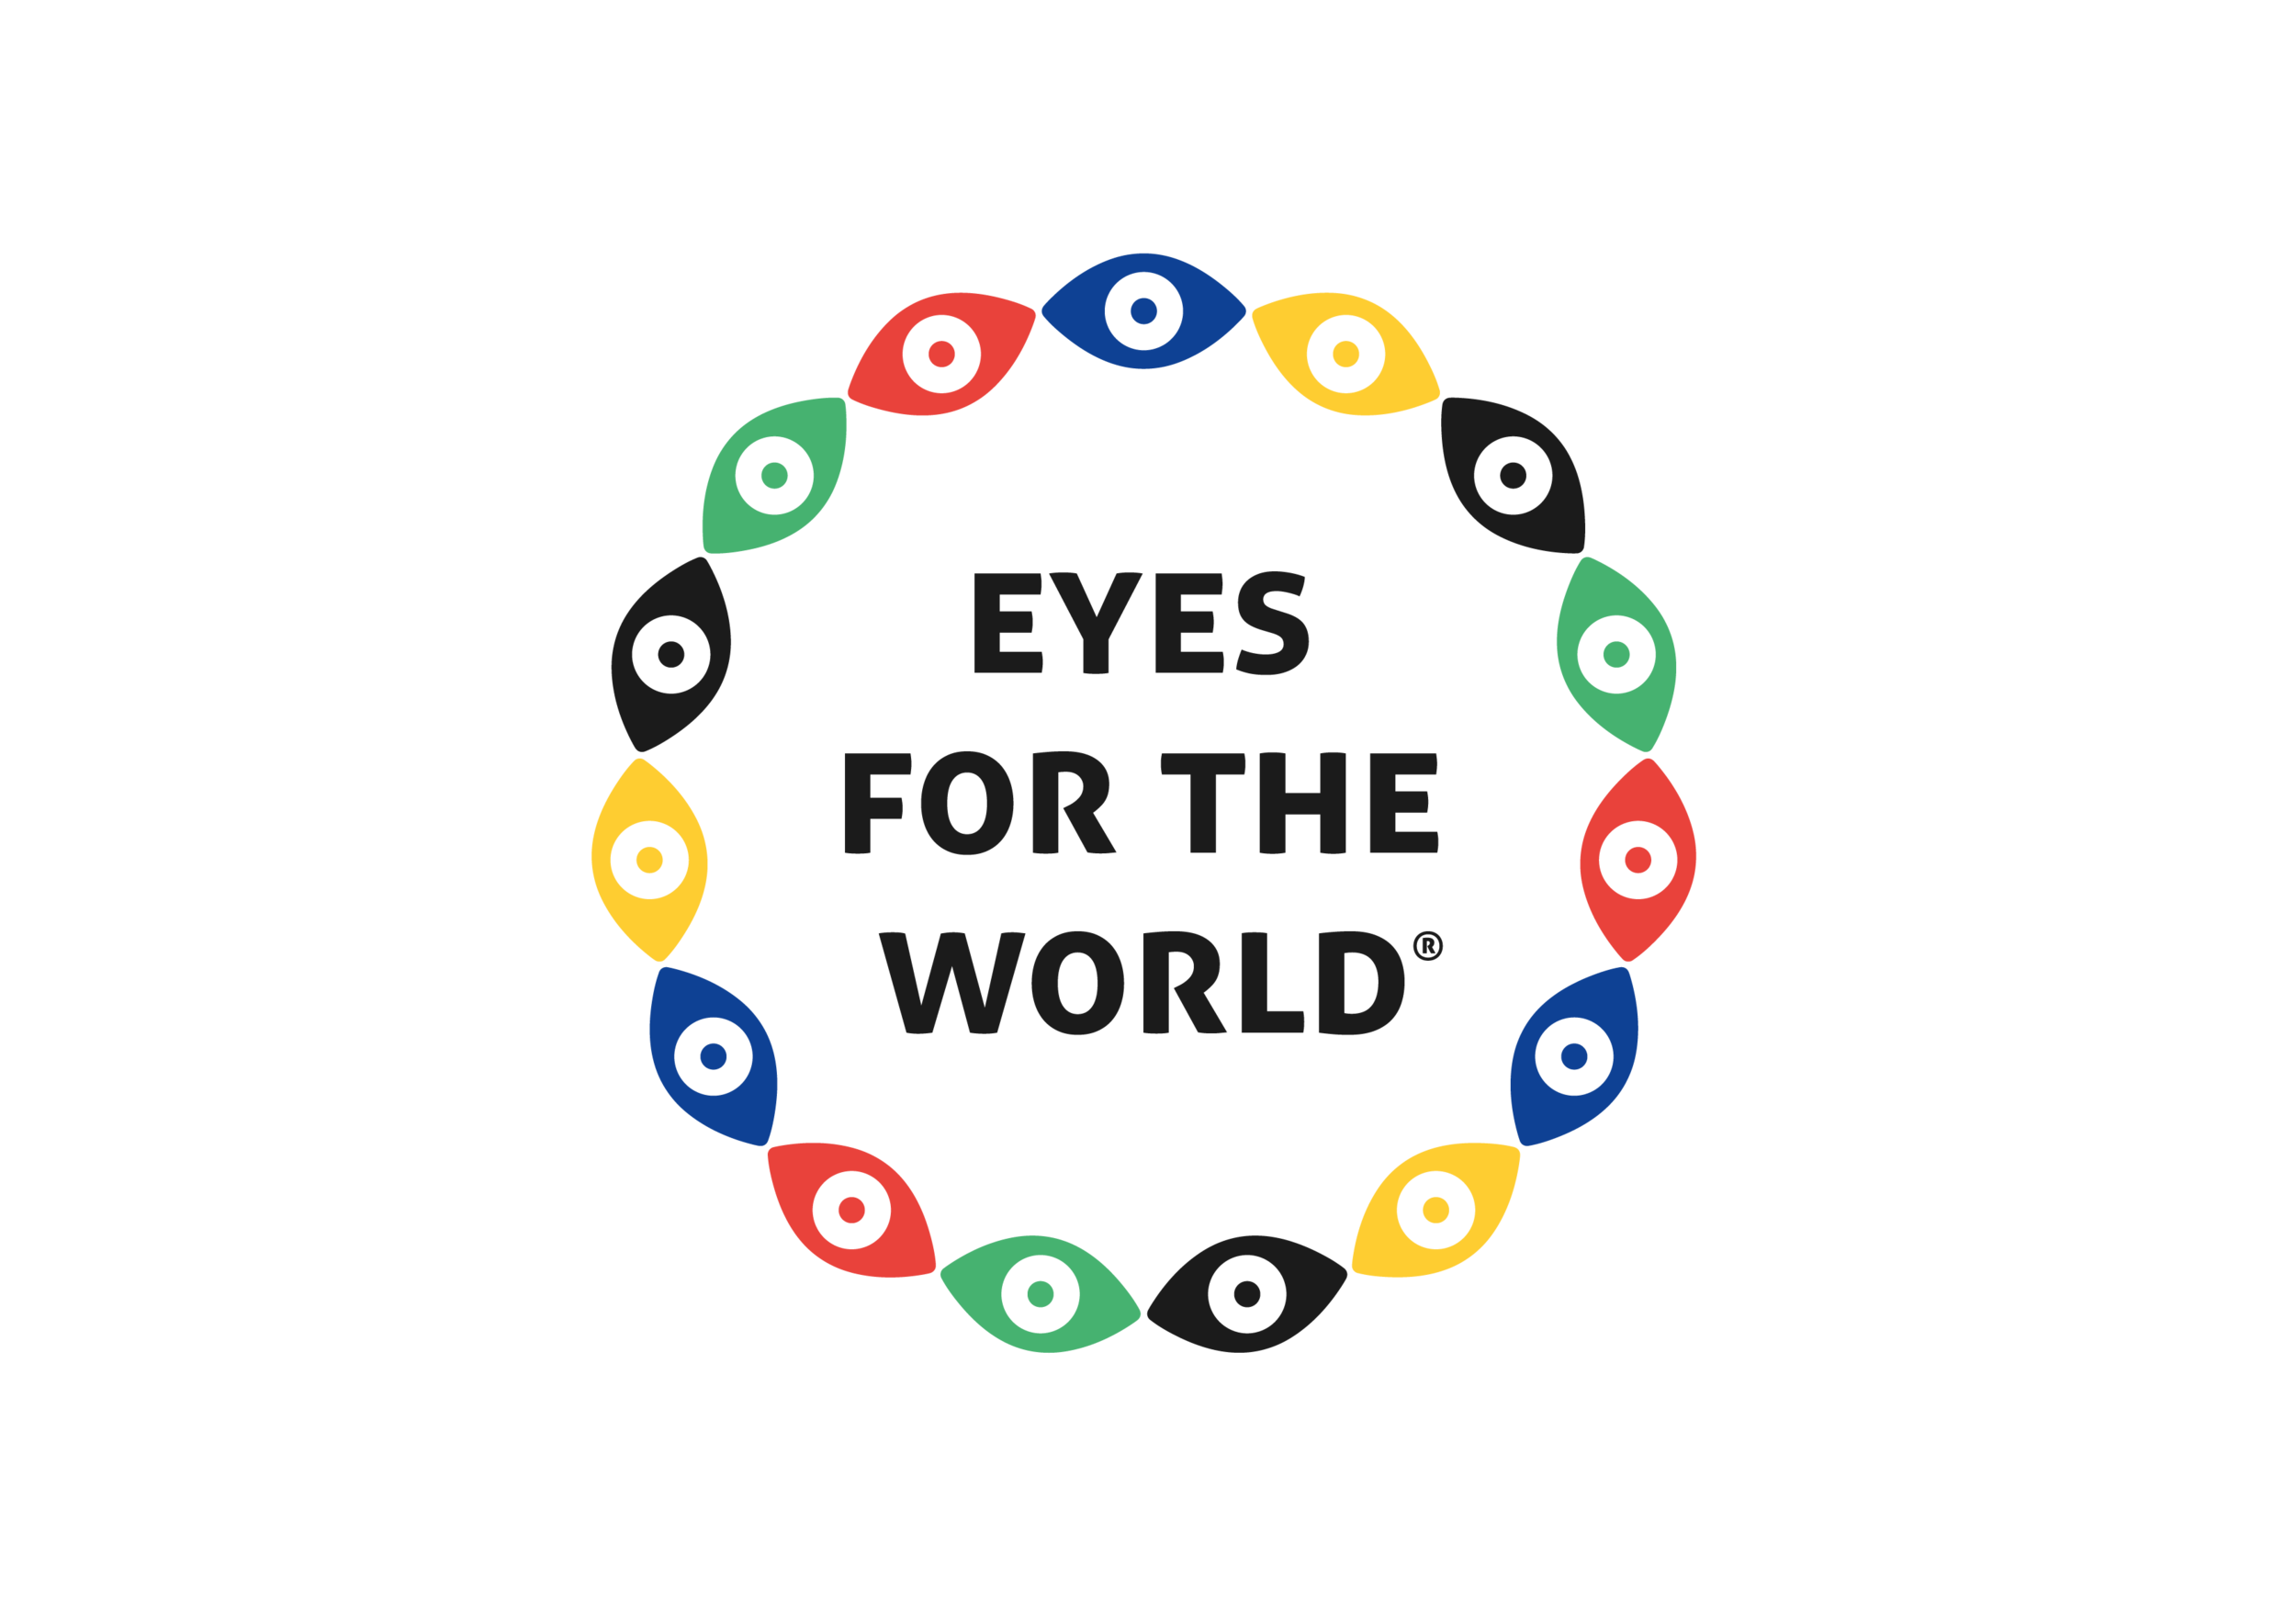 eyesfortheworld-01.png